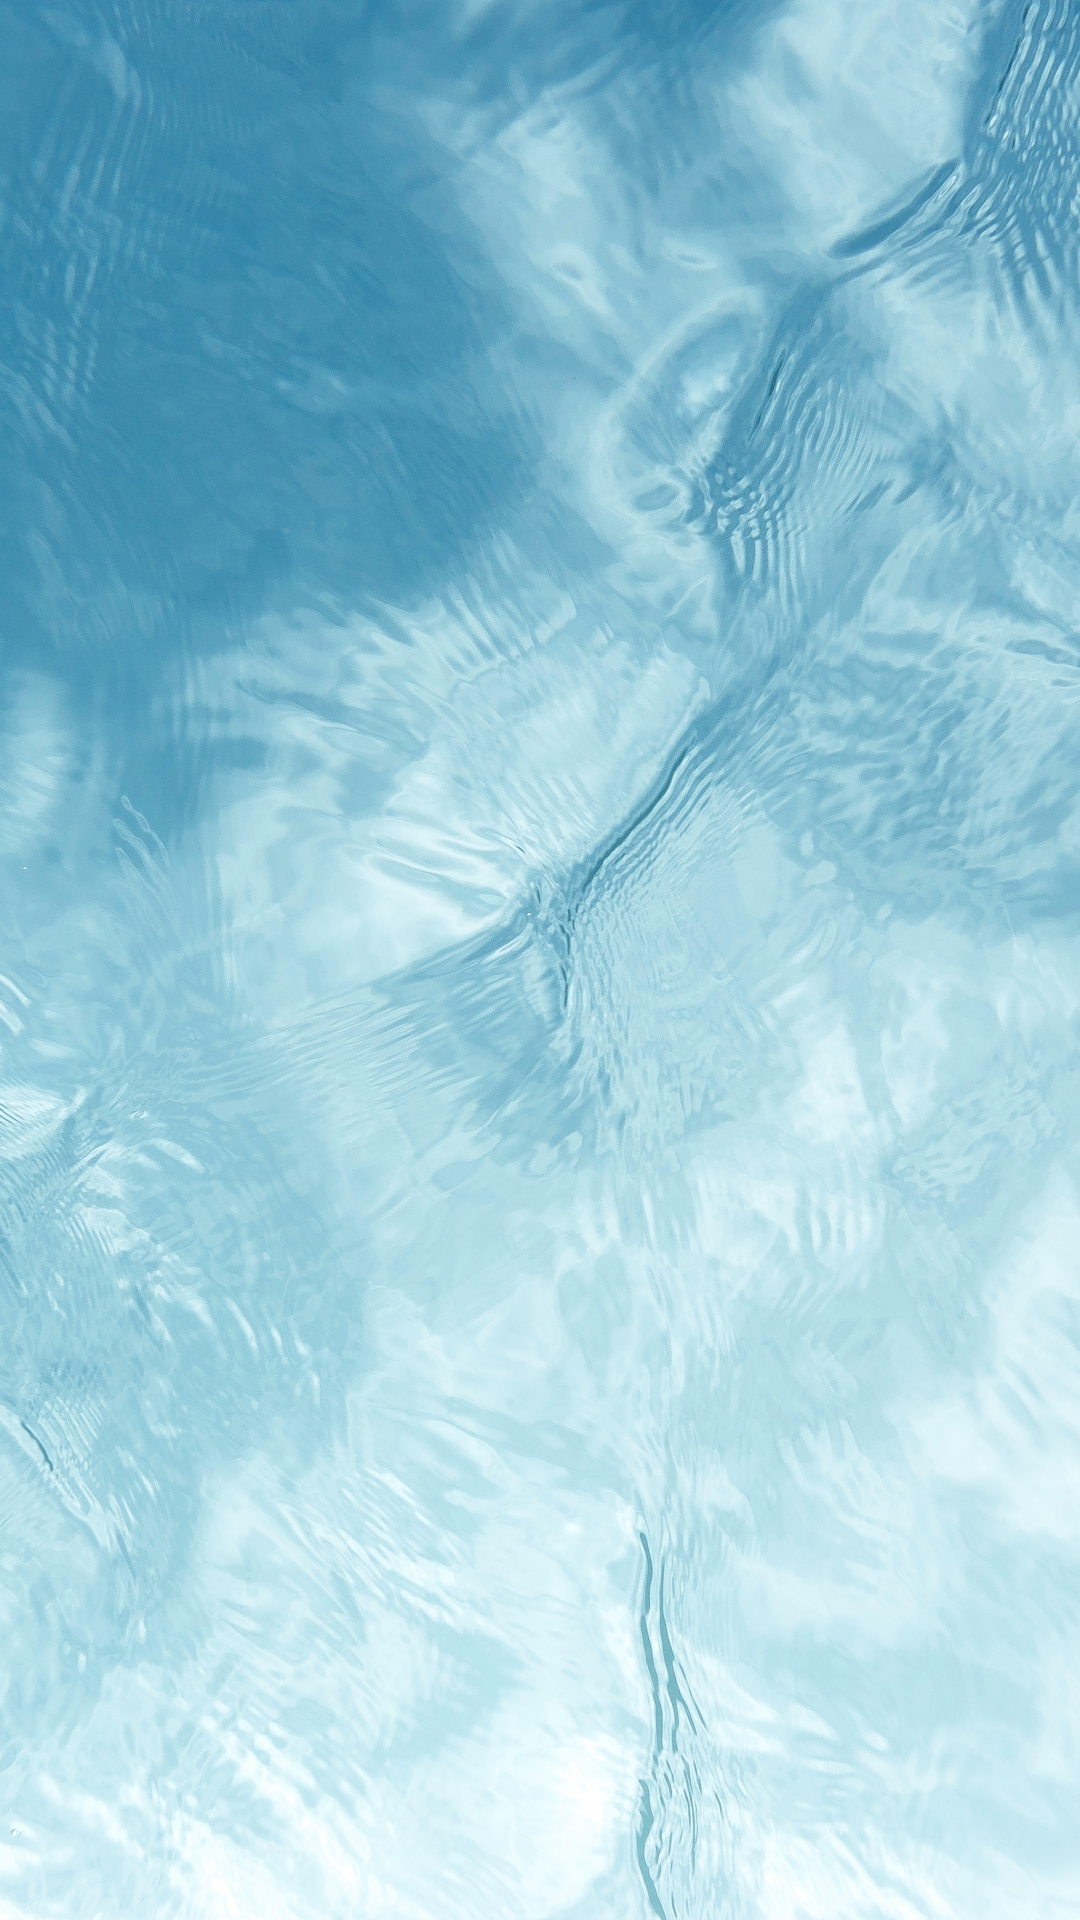 Water, Ripple, Blue, Texture iPhone Wallpaper